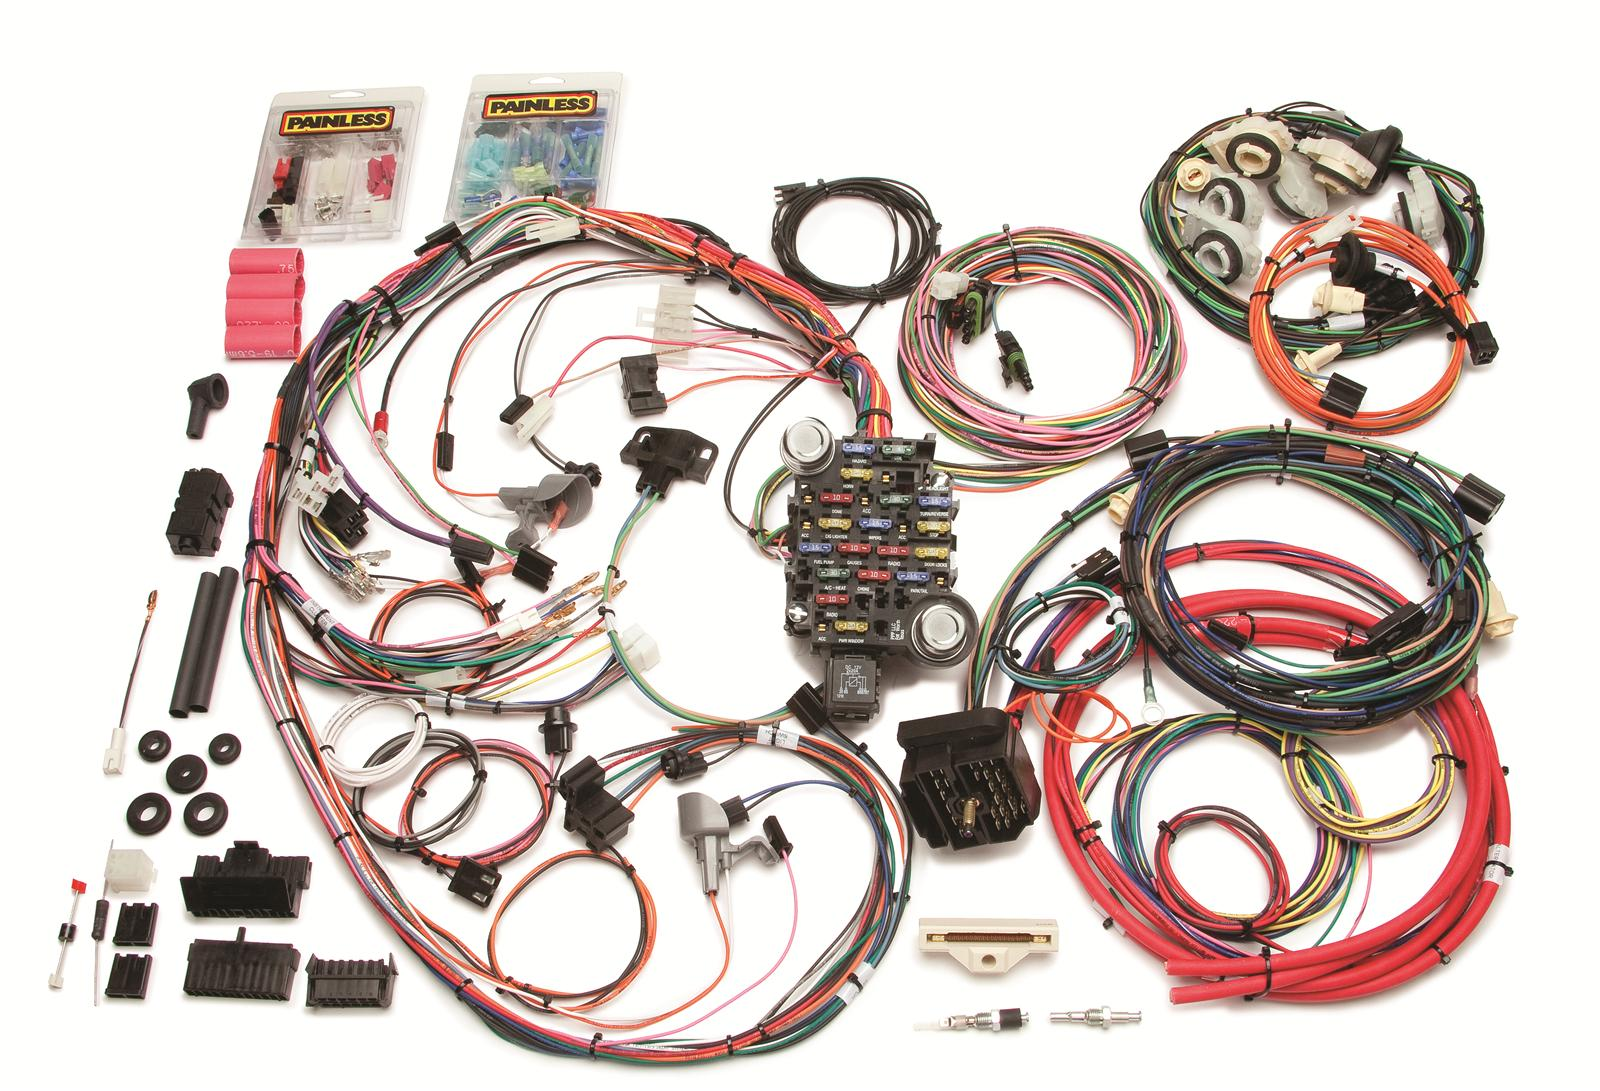 hight resolution of painless performance 26 circuit 1978 81 direct fit camaro harnesses 20114 free shipping on orders over 99 at summit racing